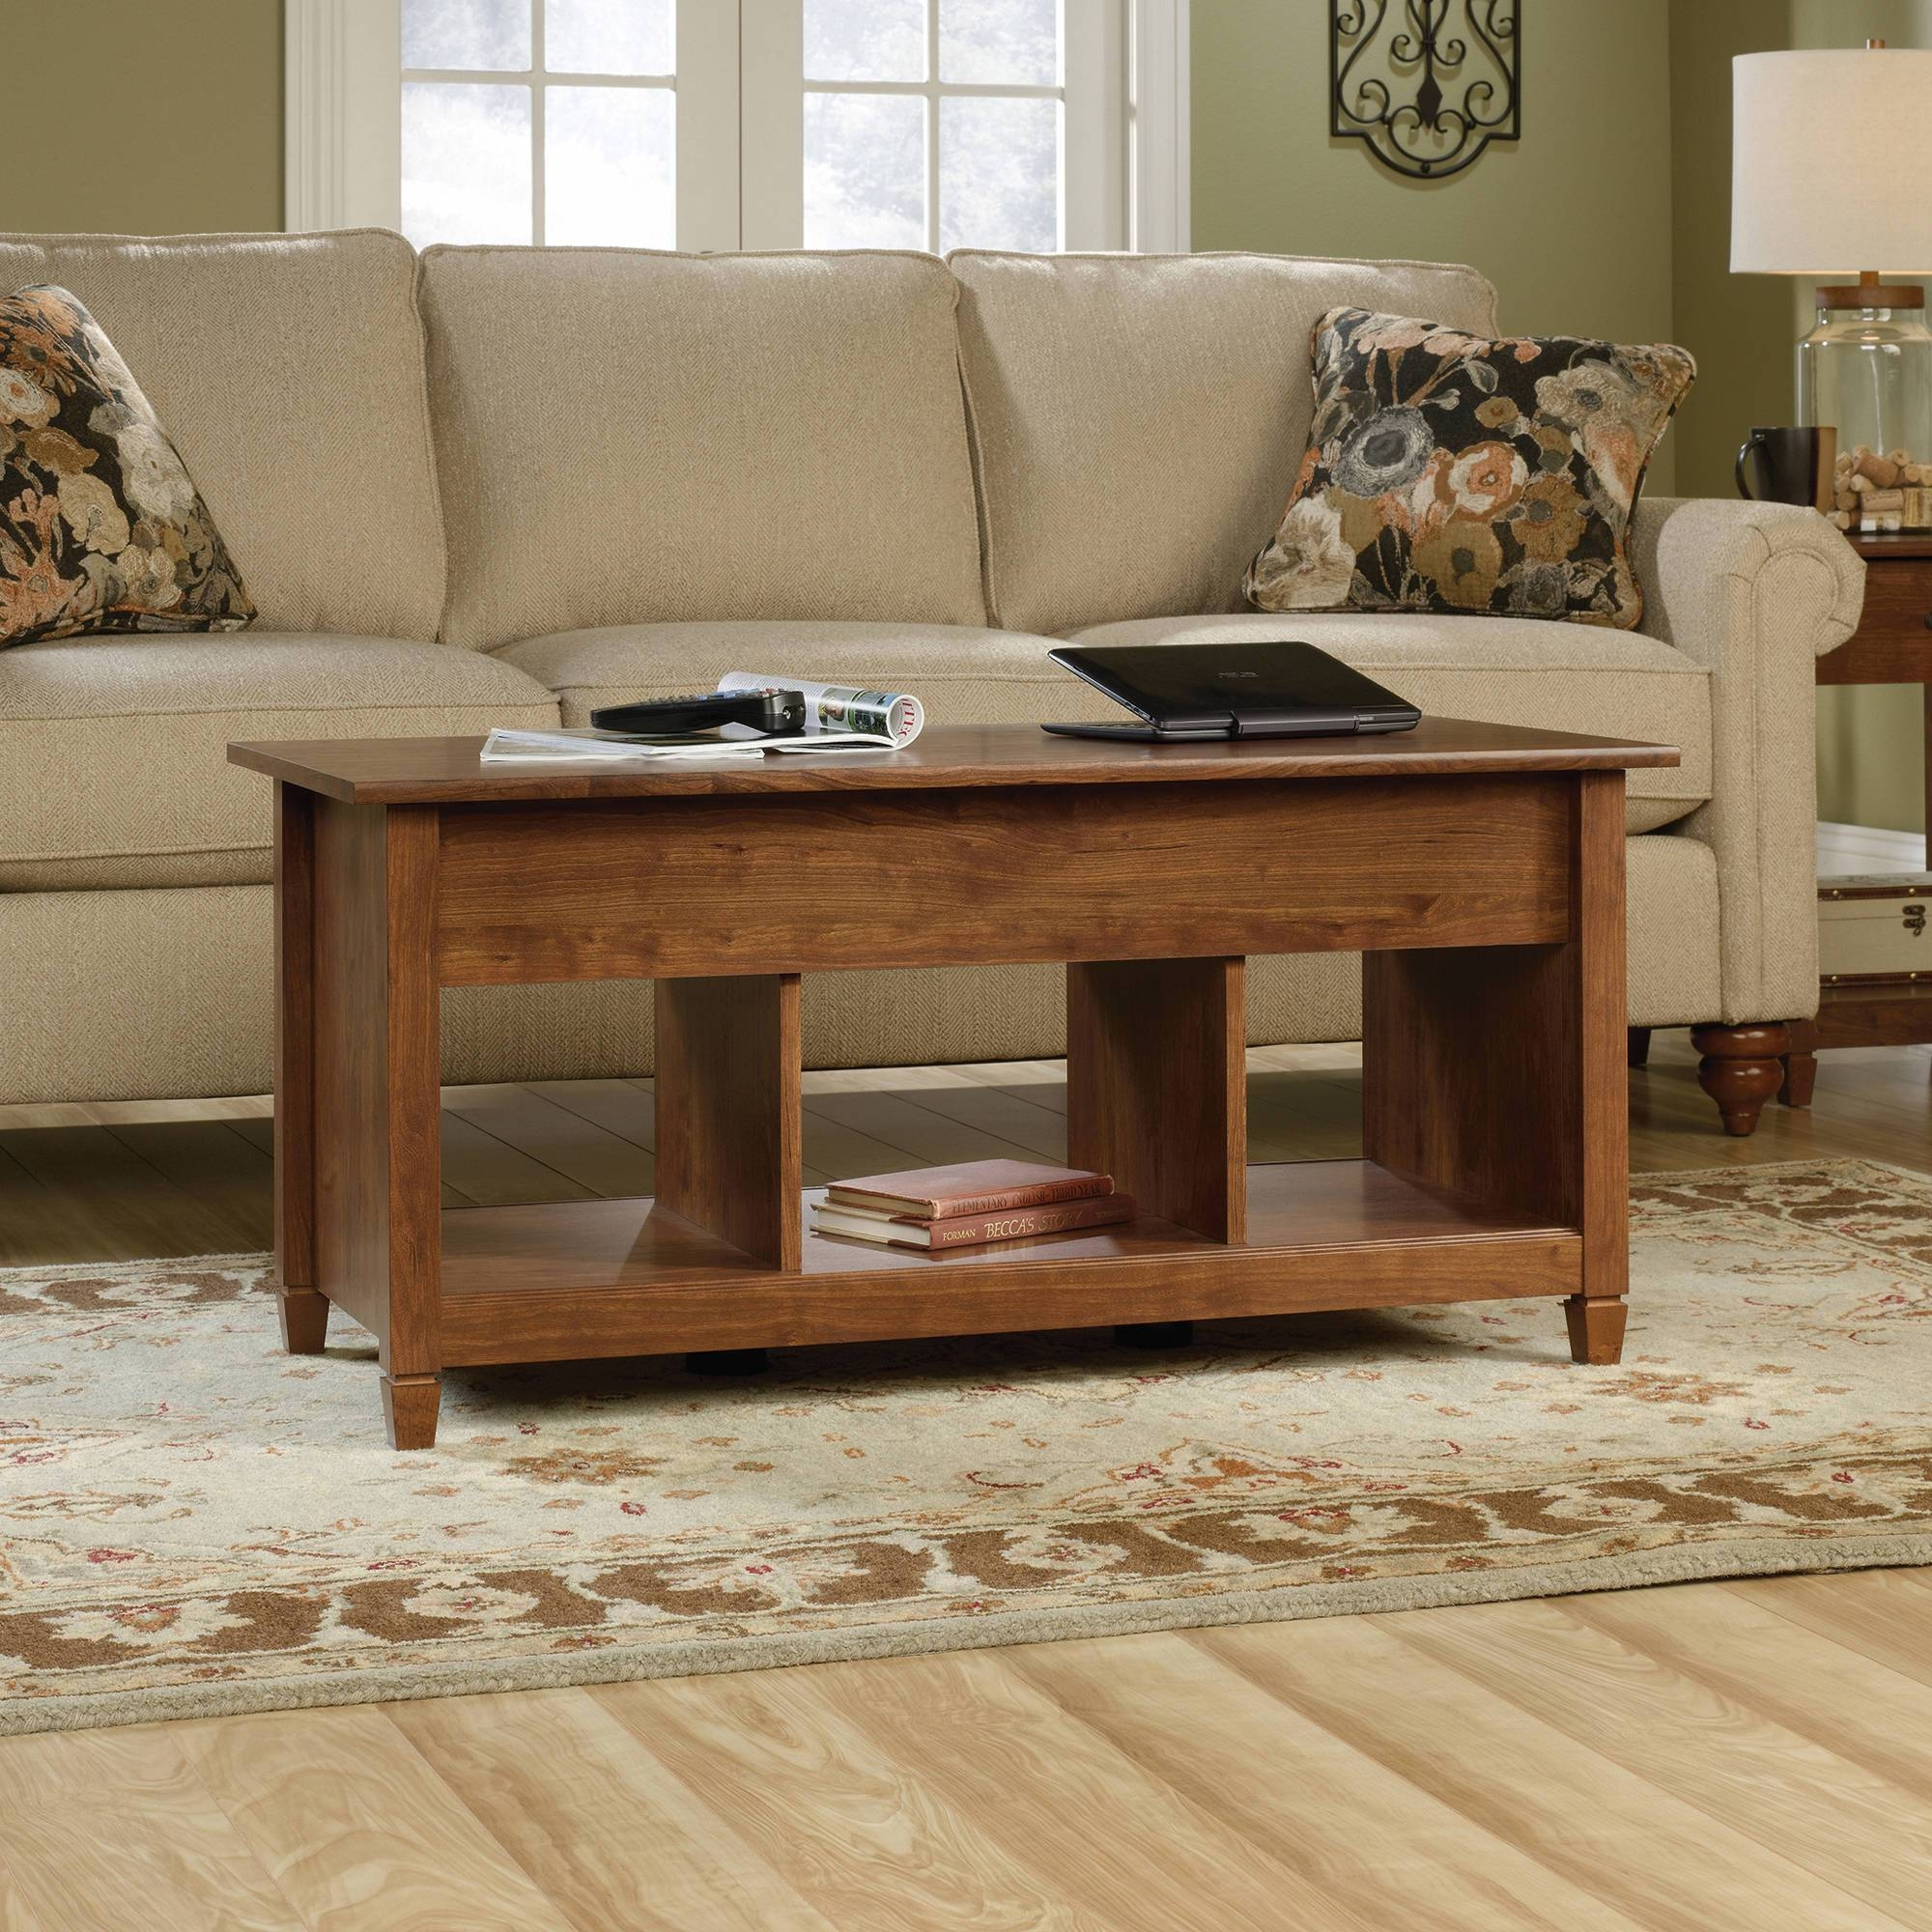 Mainstays Lift-Top Coffee Table, Multiple Colors - Walmart regarding Coffee Tables Extendable Top (Image 20 of 30)